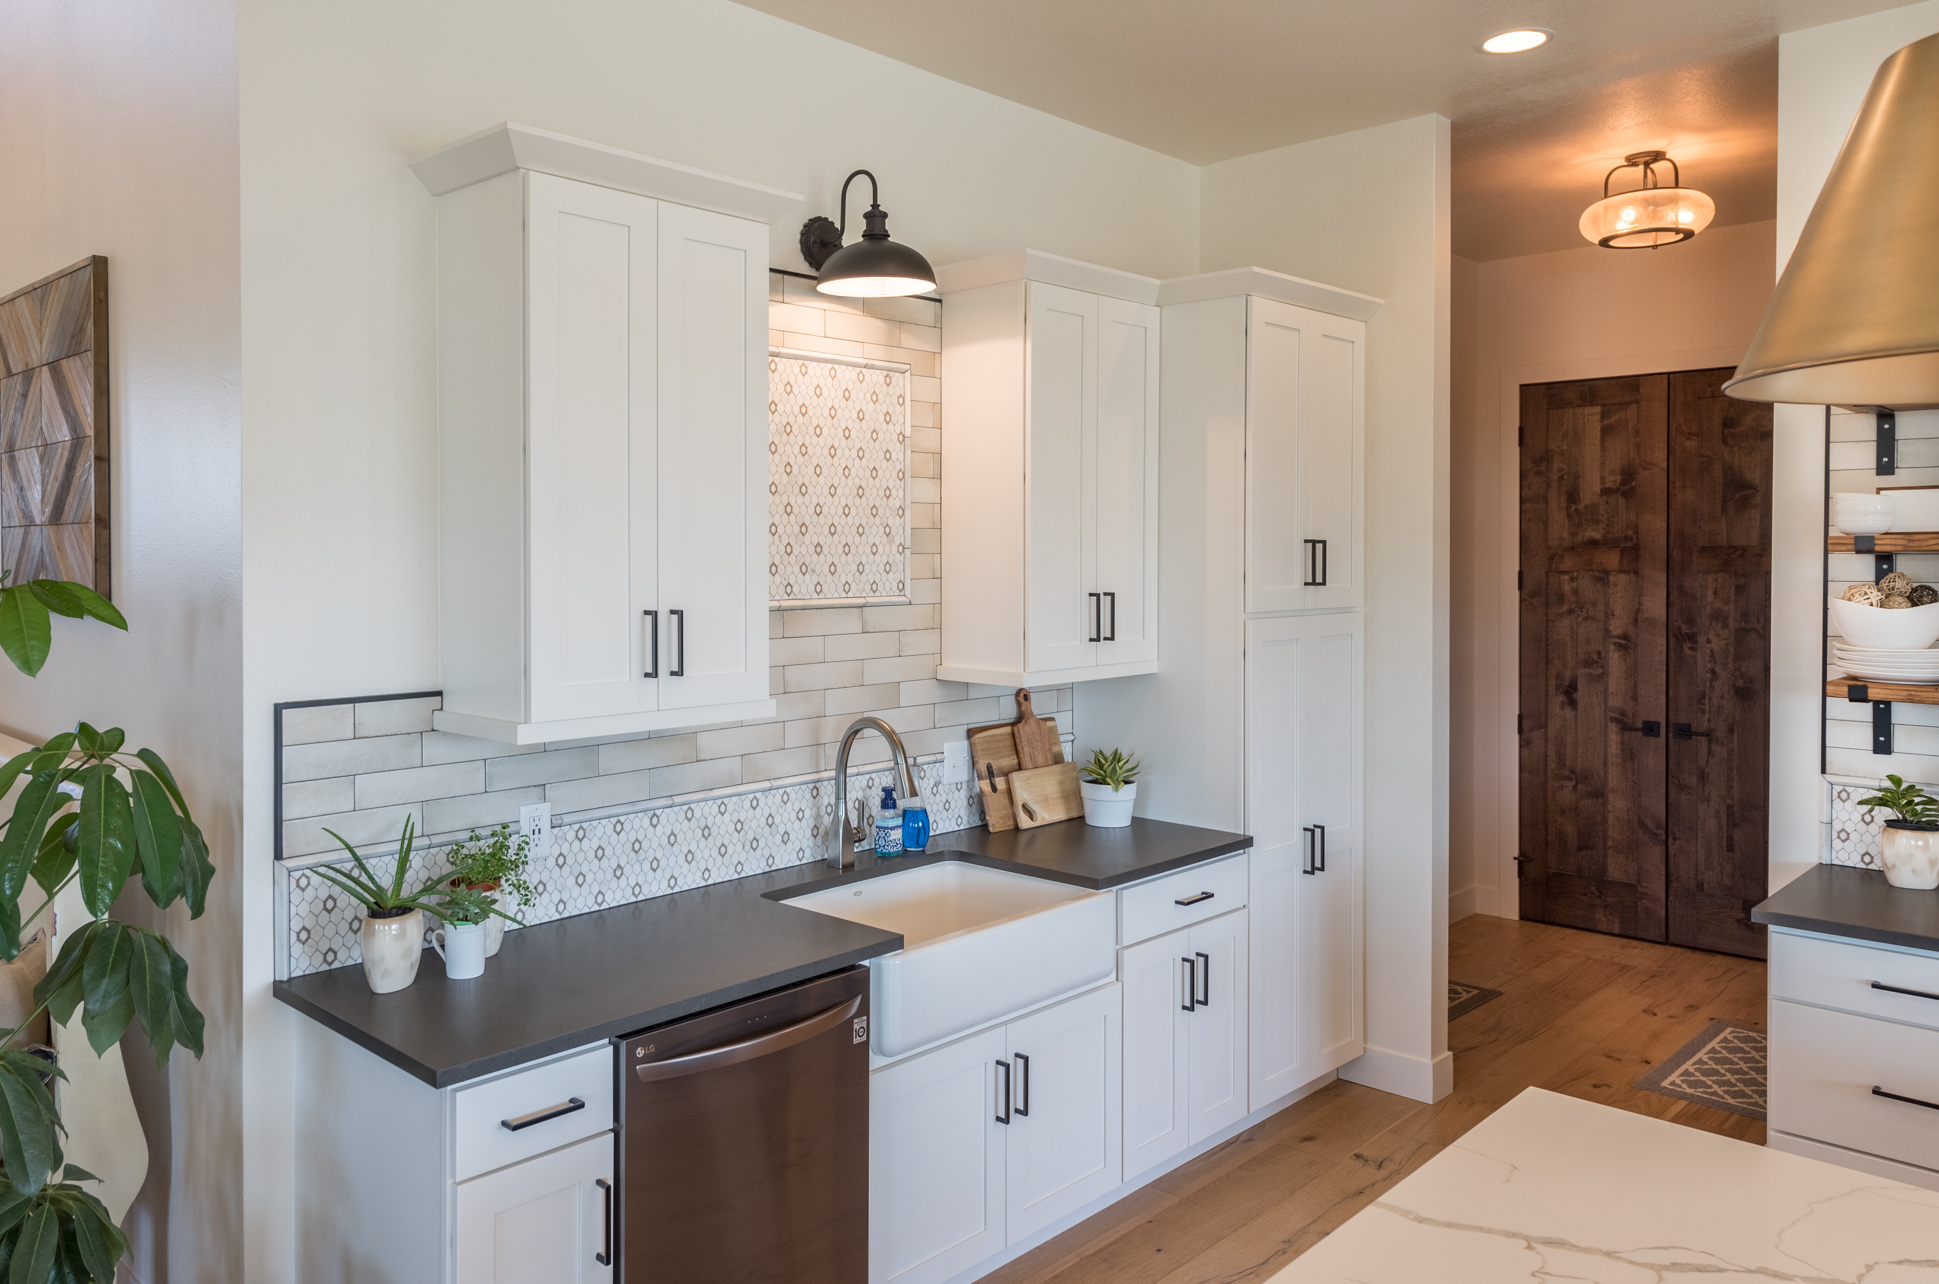 Kitchen with white cabinetry, farmhouse sink and island